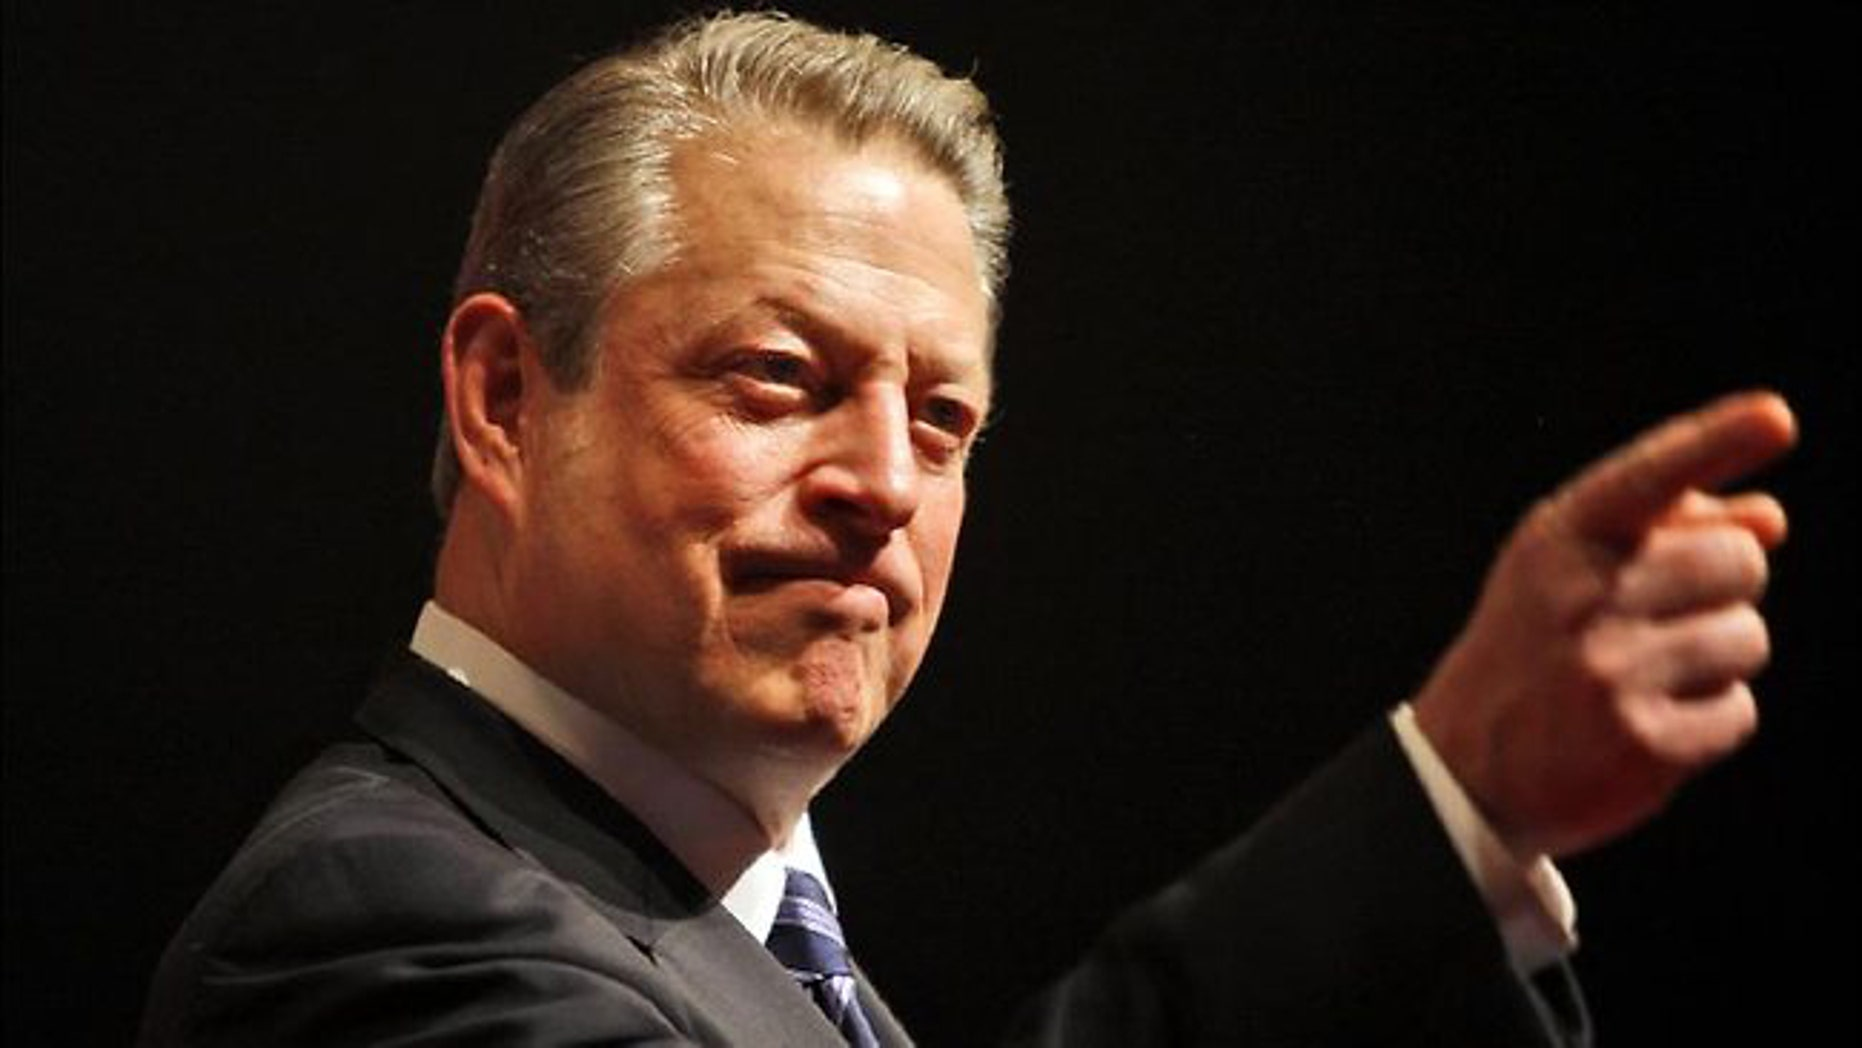 Former vice president Al Gore tried to purchase Twitter over a bottle of tequila.